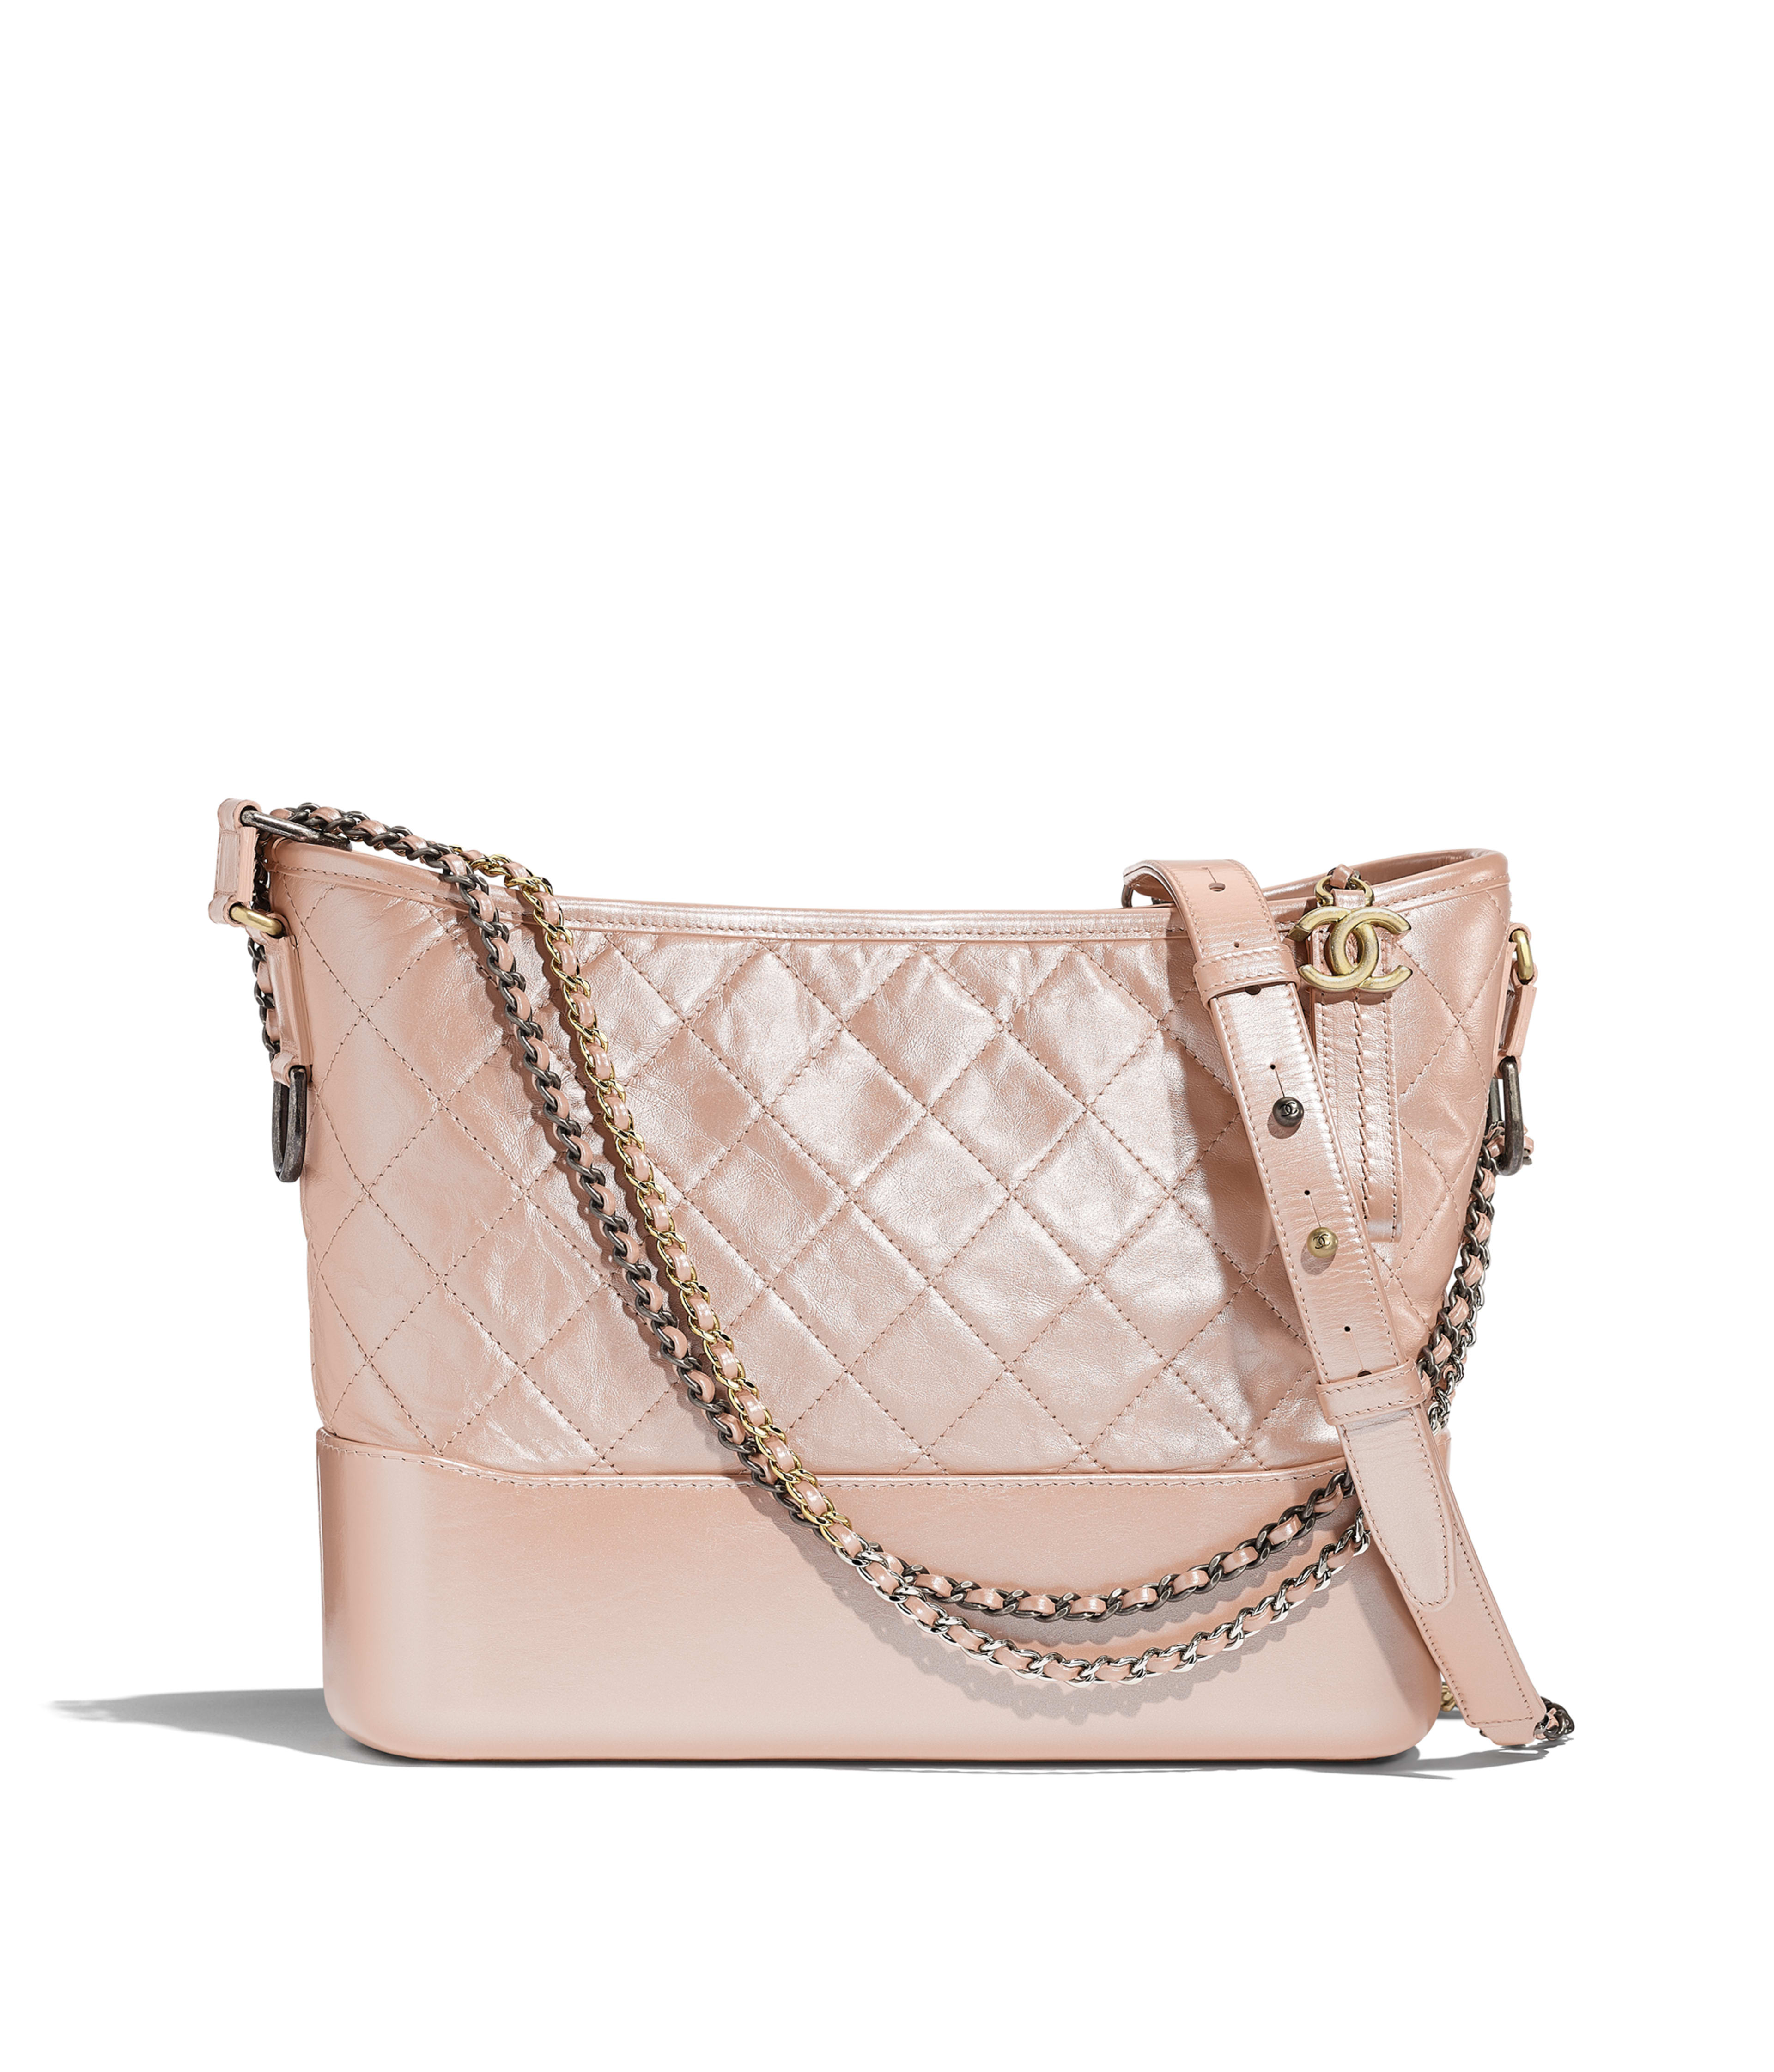 d670c971f0cb CHANEL'S GABRIELLE Hobo Bag Iridescent Aged Calfskin, Gold-Tone & Silver-Tone  Metal, Light Pink Ref. A93824B00395N4464